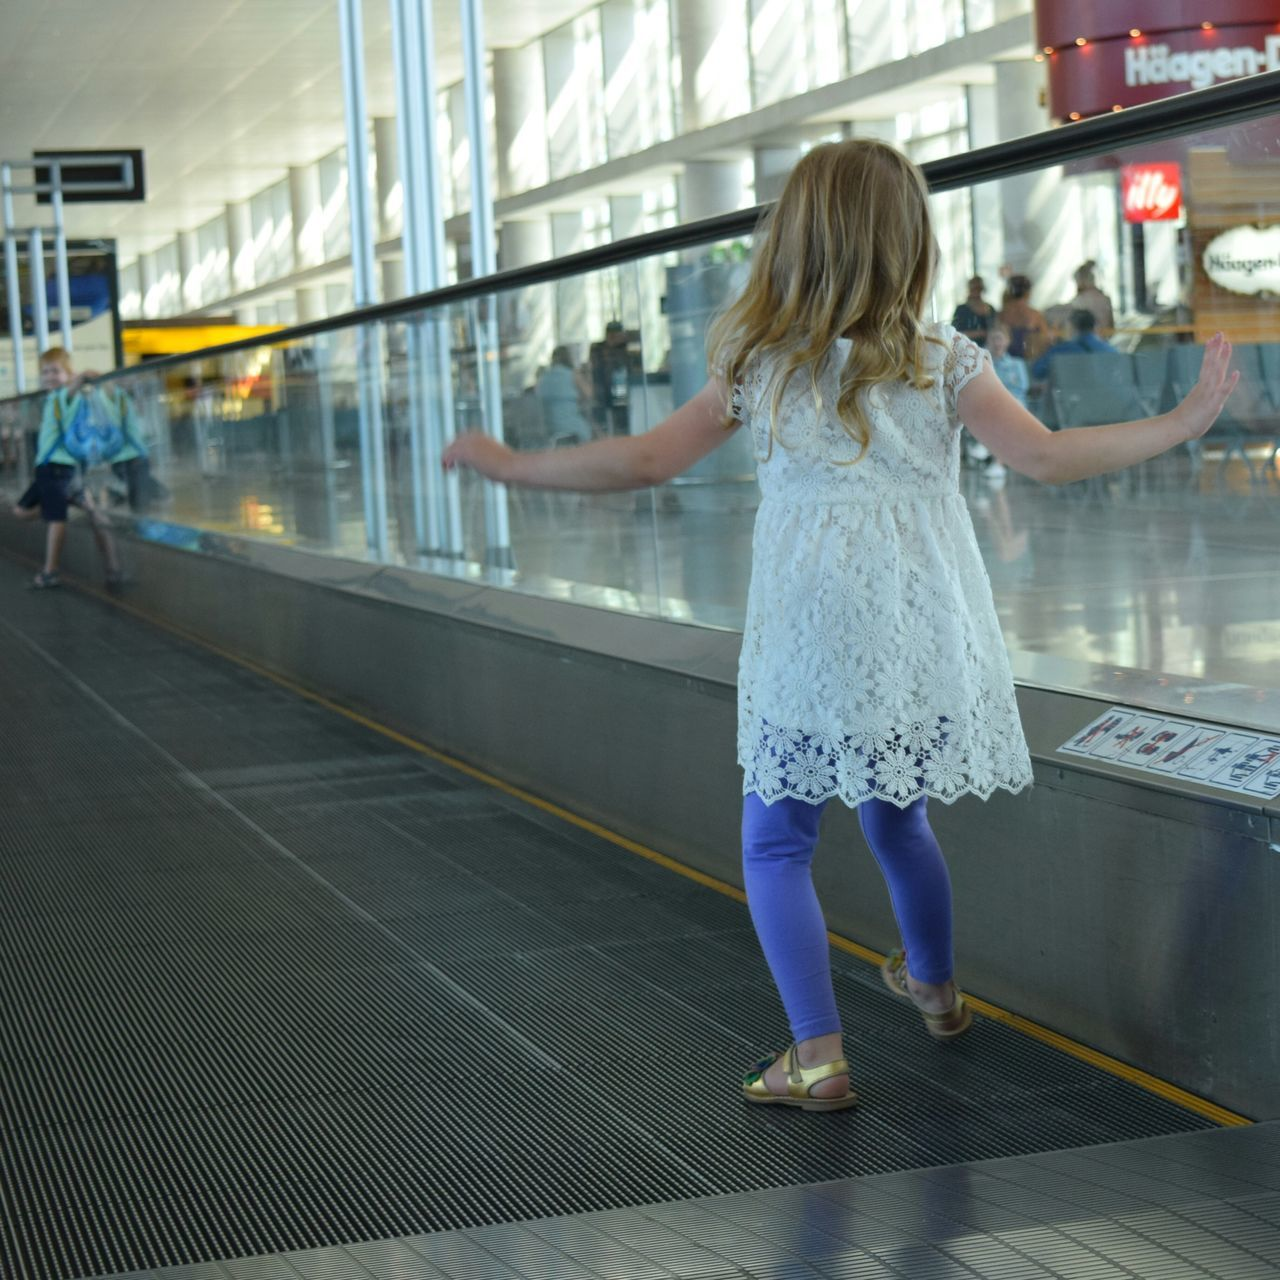 Airport Sliding Scale Boy And Girl Playing Barcelona On The Way